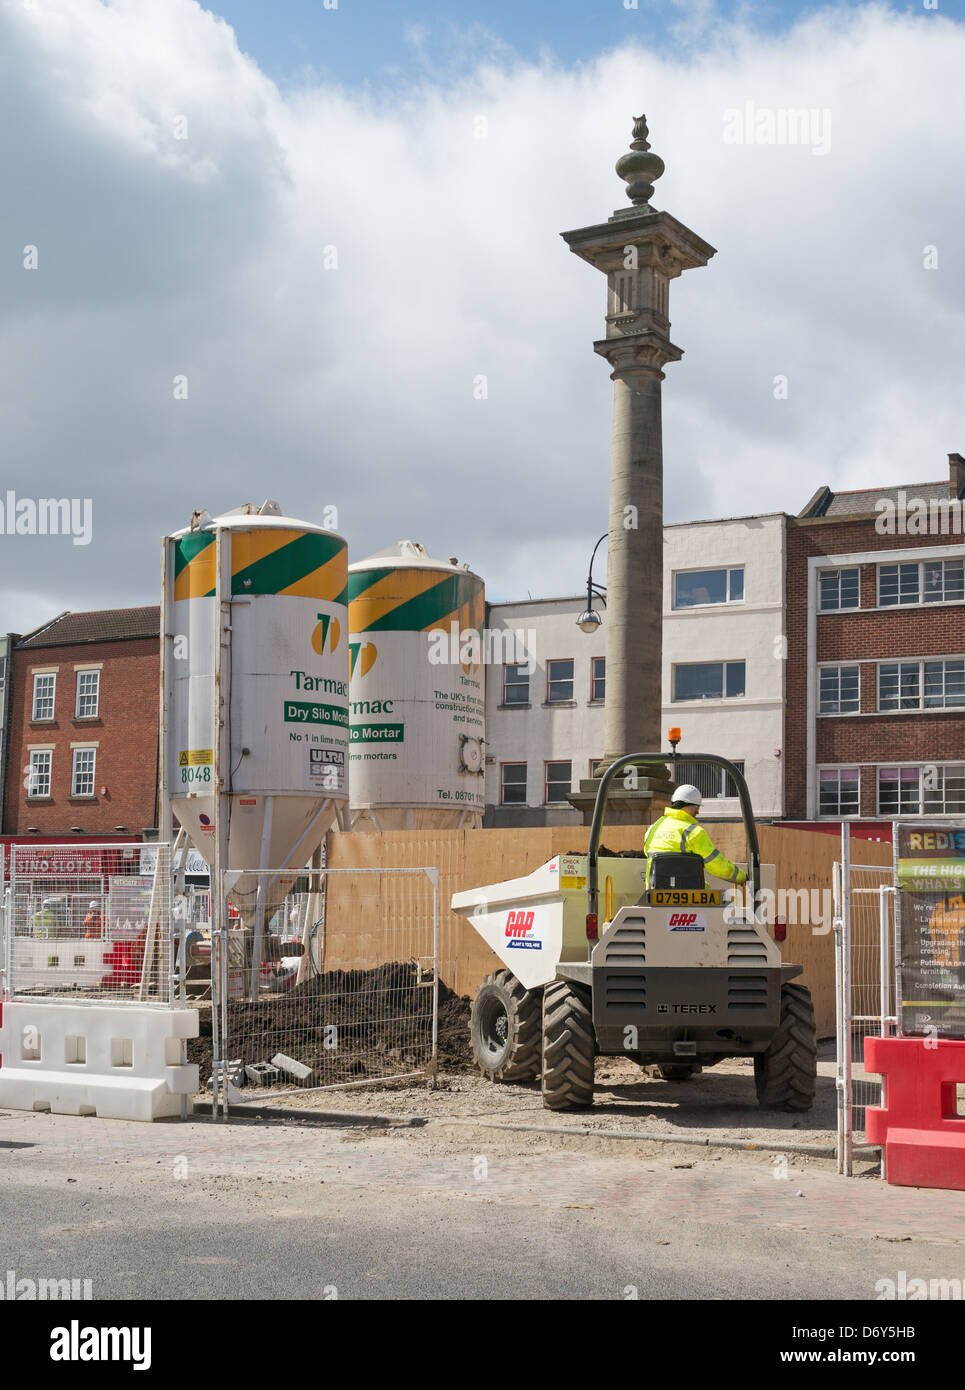 Construction work in progress Stockton-on-Tees High Street - Stock Image